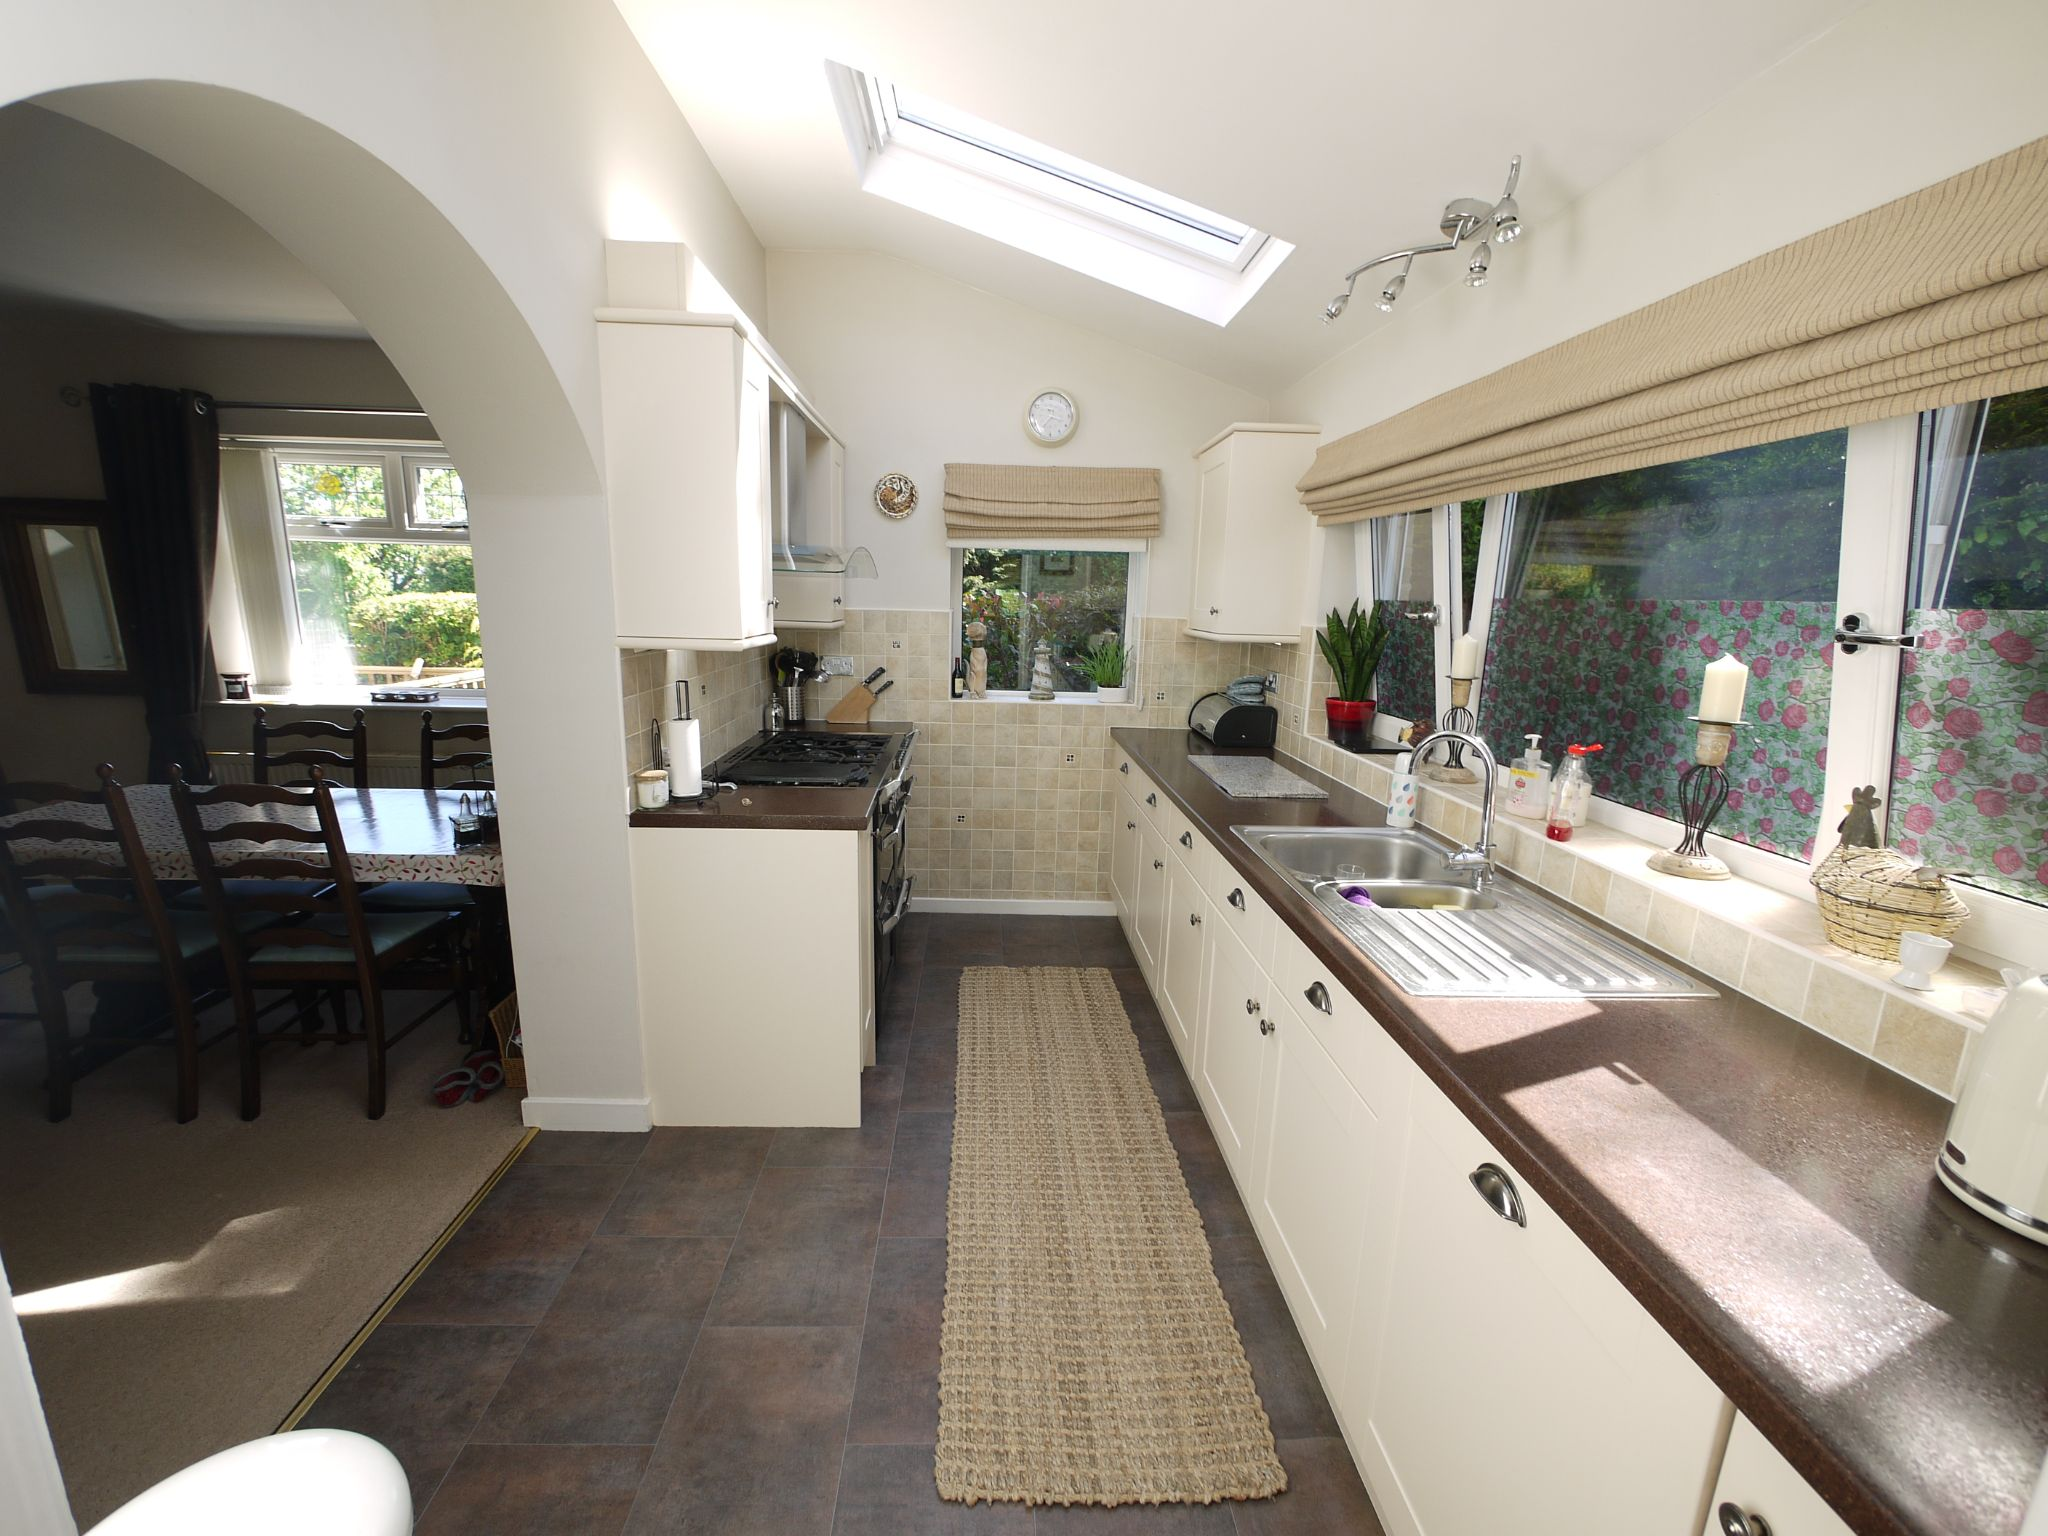 5 bedroom detached house SSTC in Brighouse - Kitchen 2.